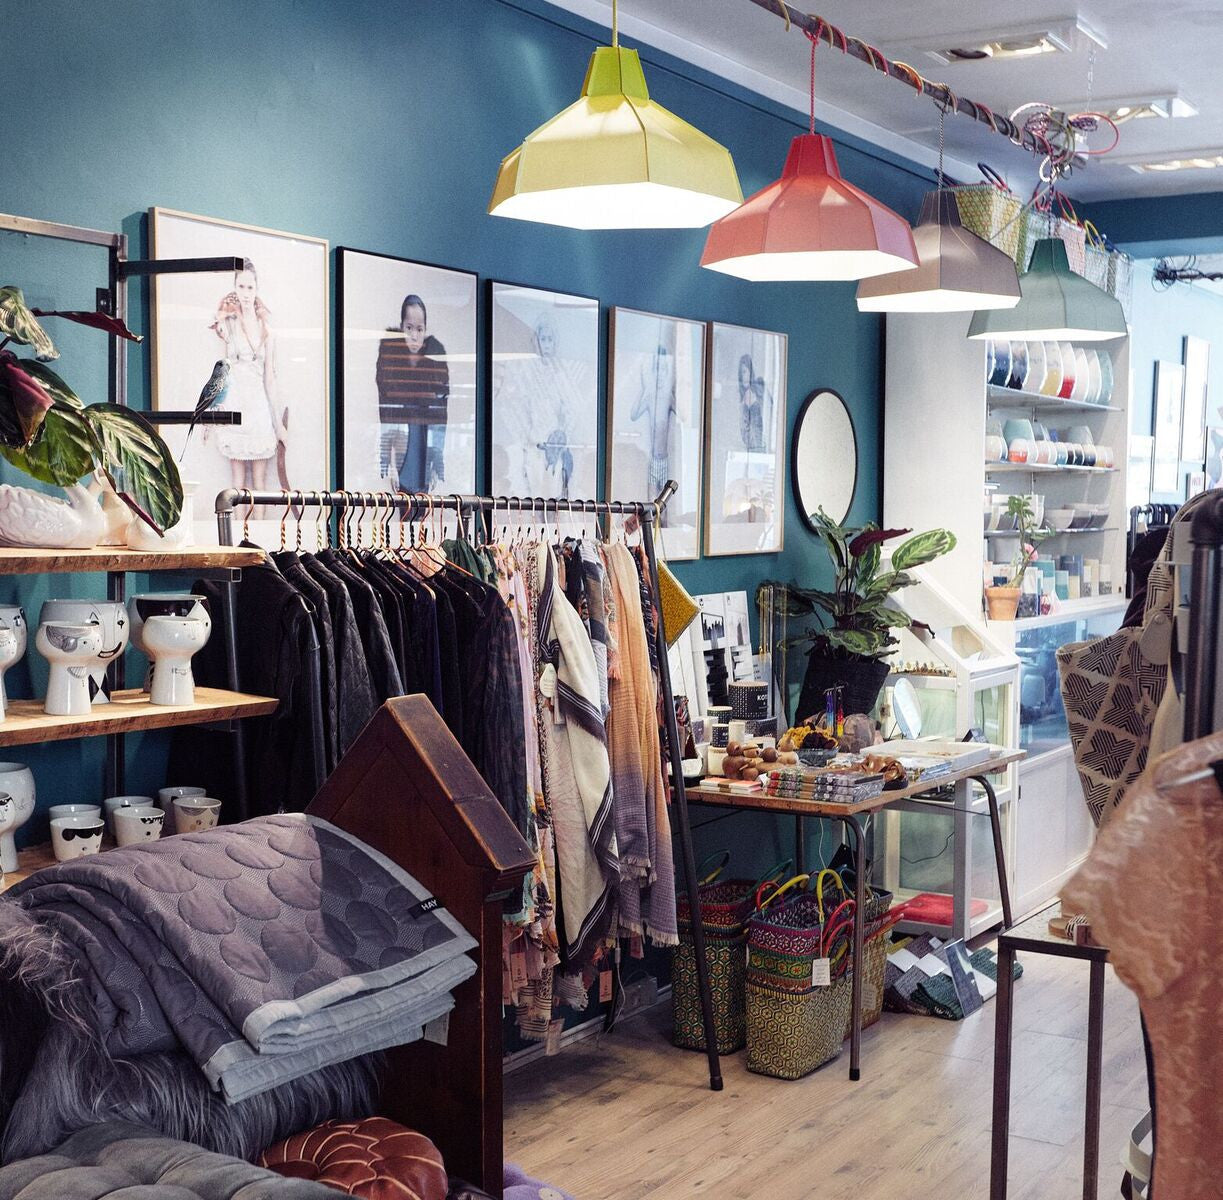 Amazing ... Store Interior With RackBuddy Cassidy Urban Living CPH  Interior With  RackBuddy Clothes Racks   Industrial Design ...